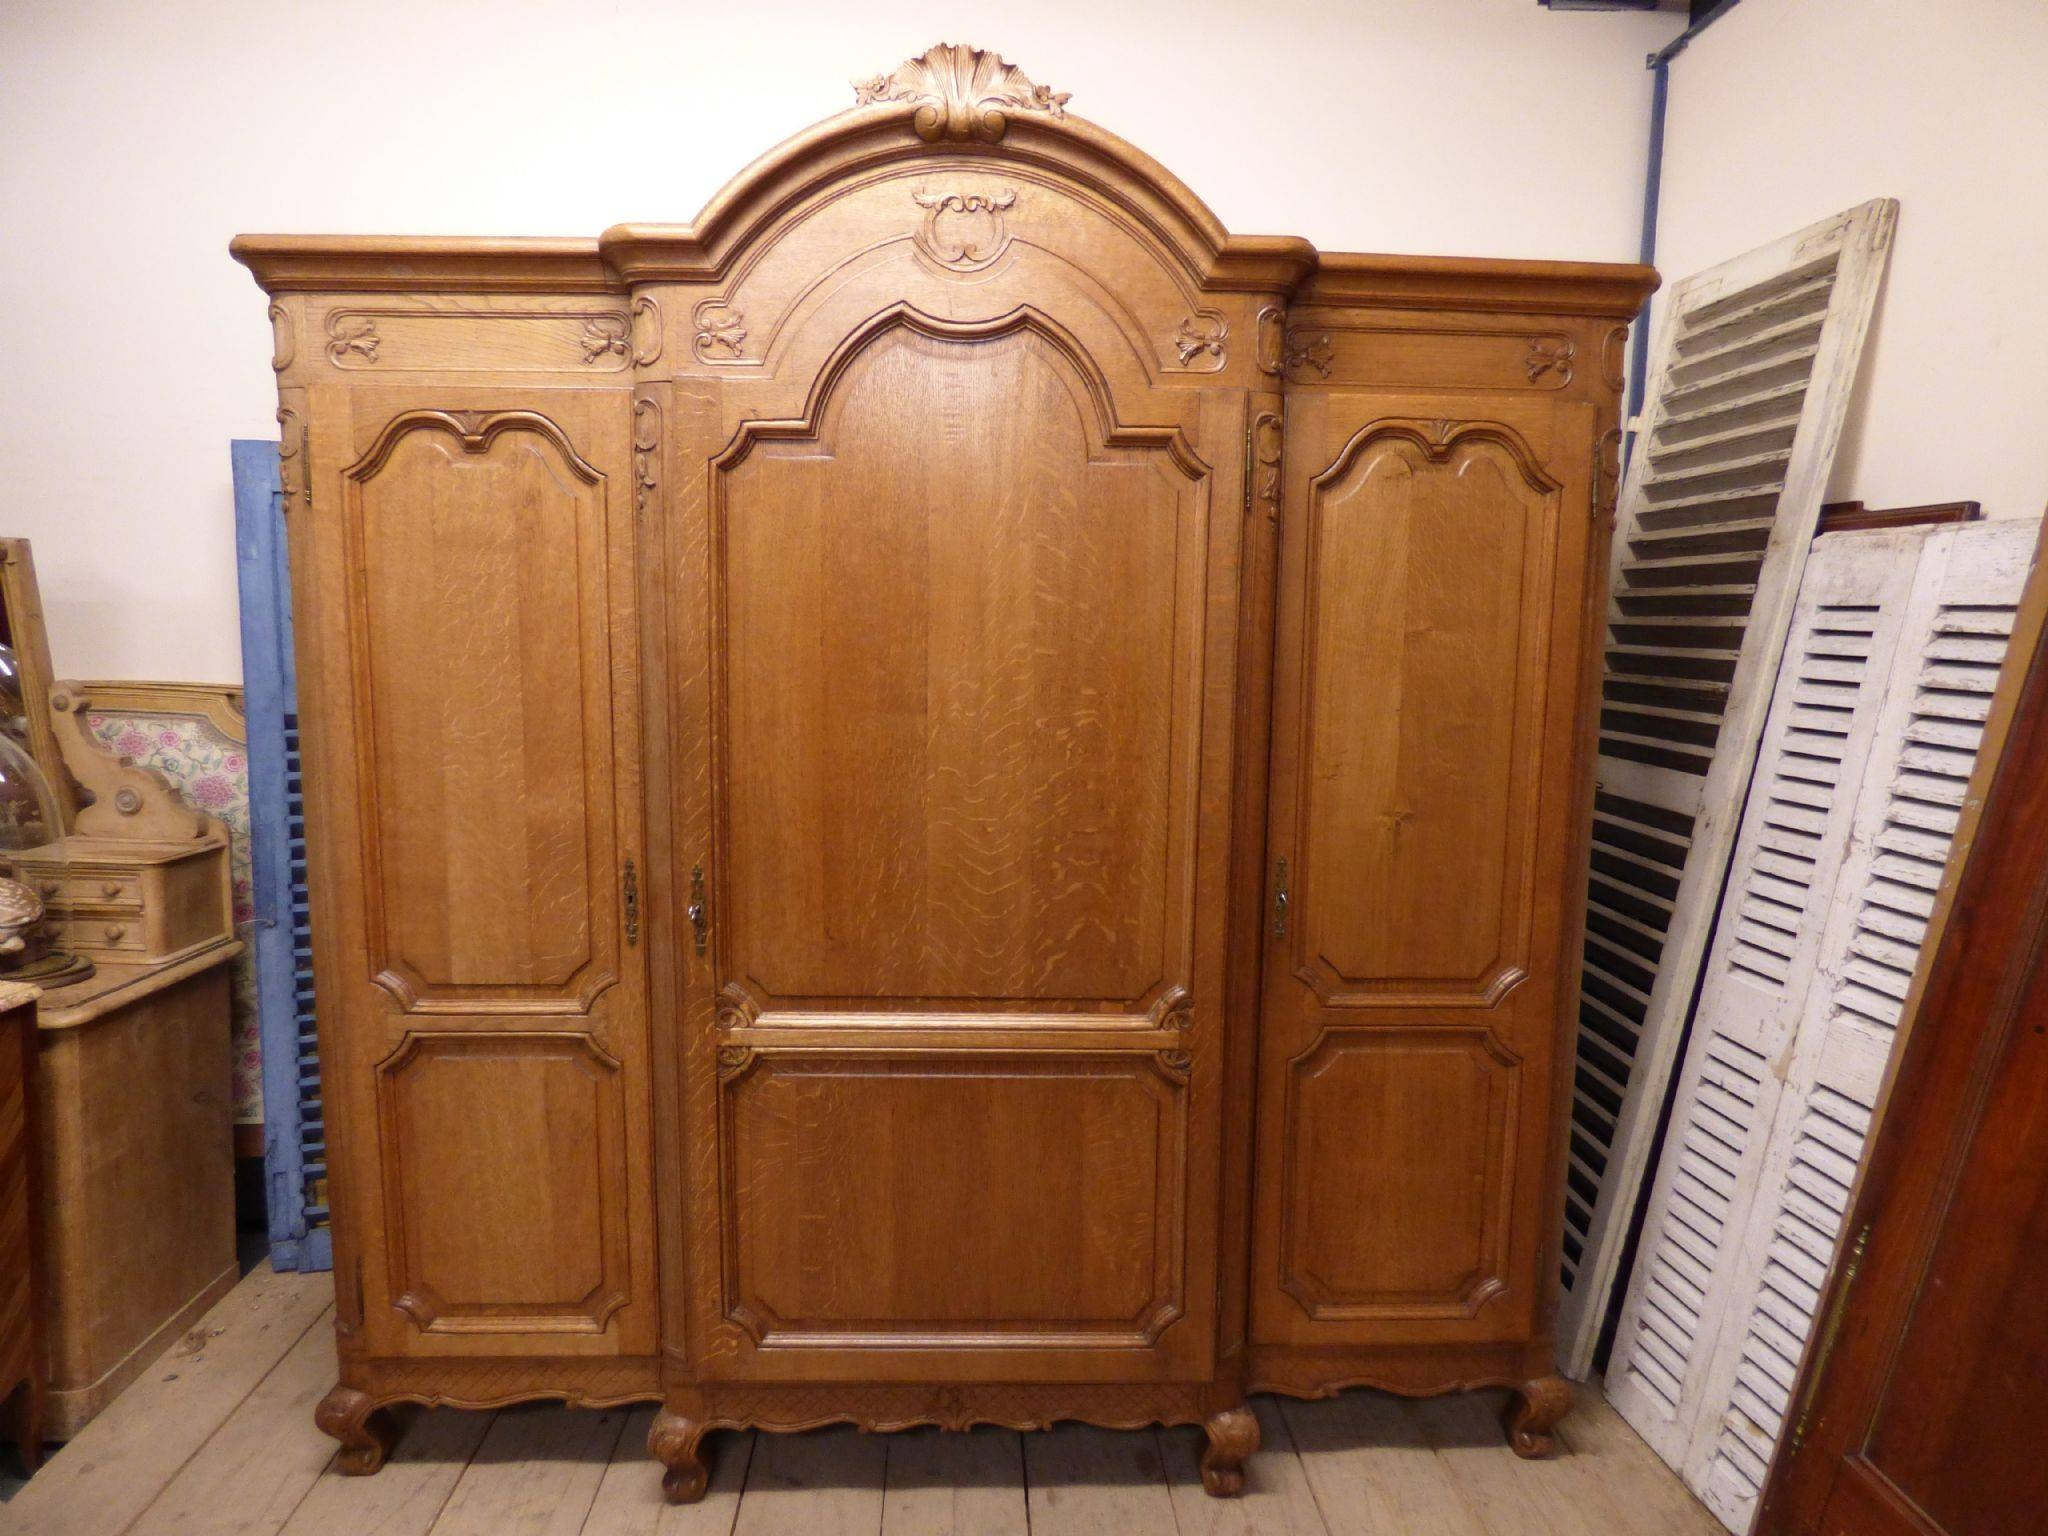 Bedroom Furniture - The French Depot regarding Antique French Wardrobes (Image 8 of 15)